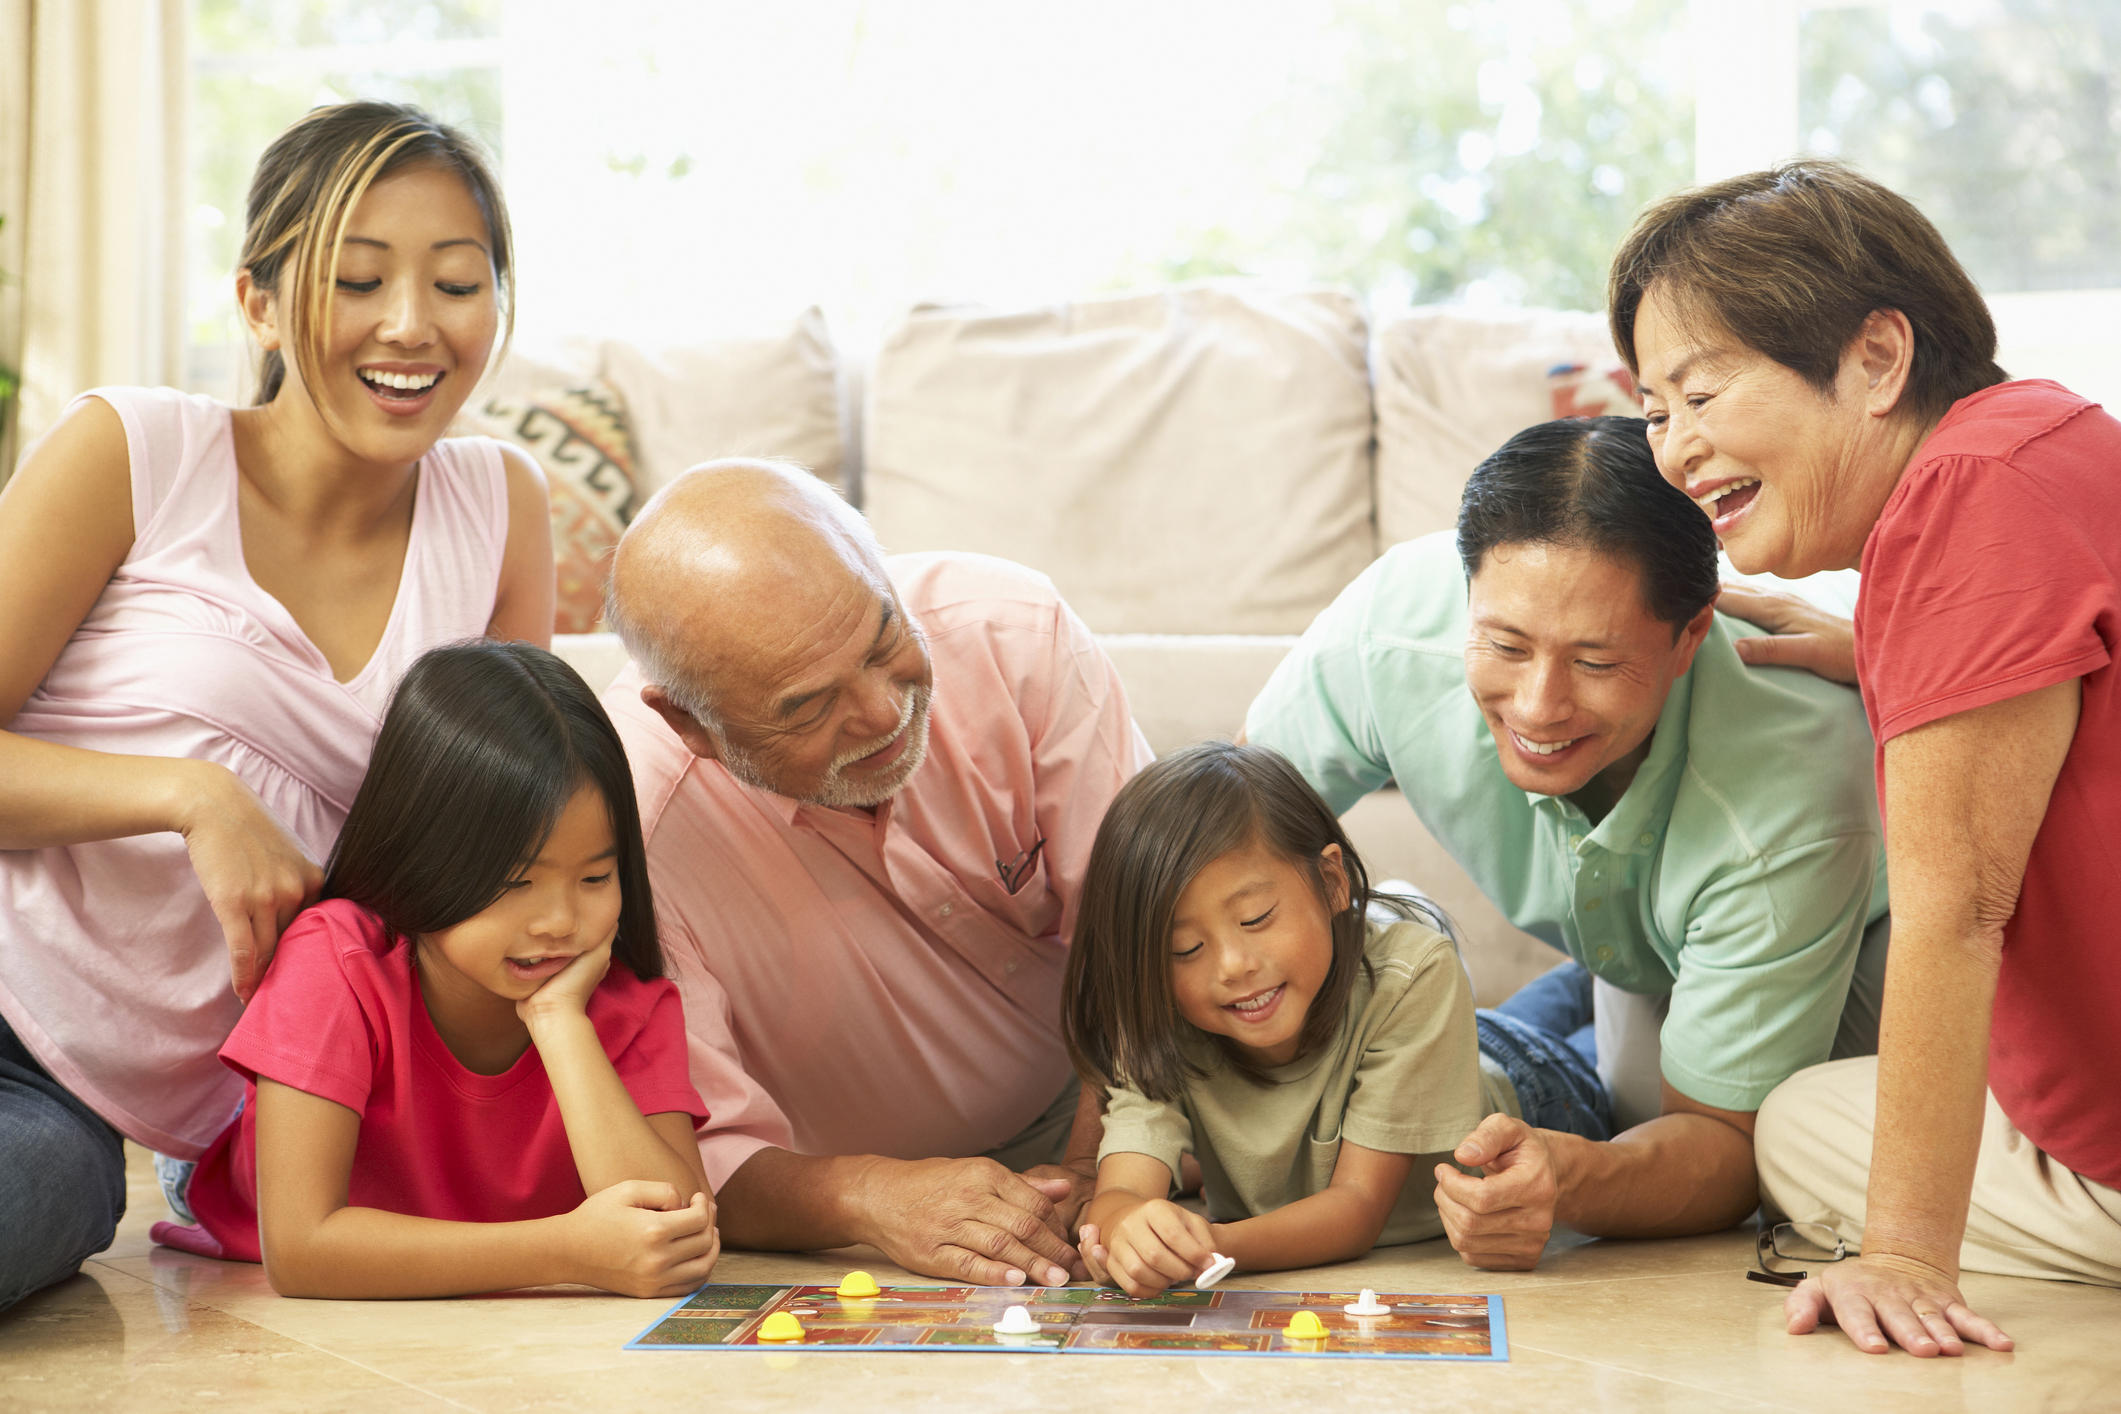 Extended Family Group Playing Board Game In Living Room At Home